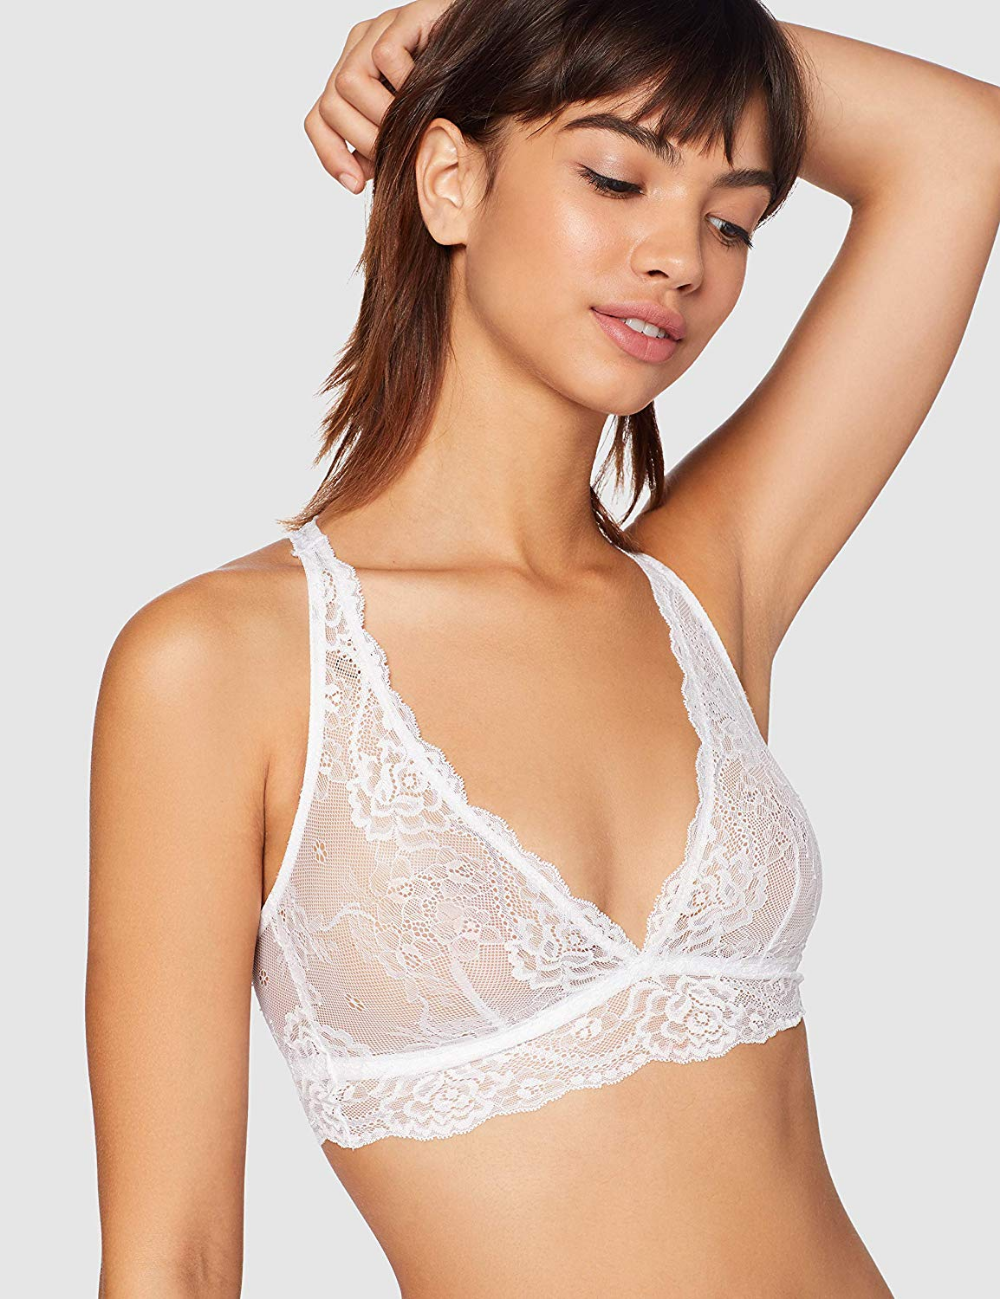 Iris /& Lilly Womens Lace Bralette